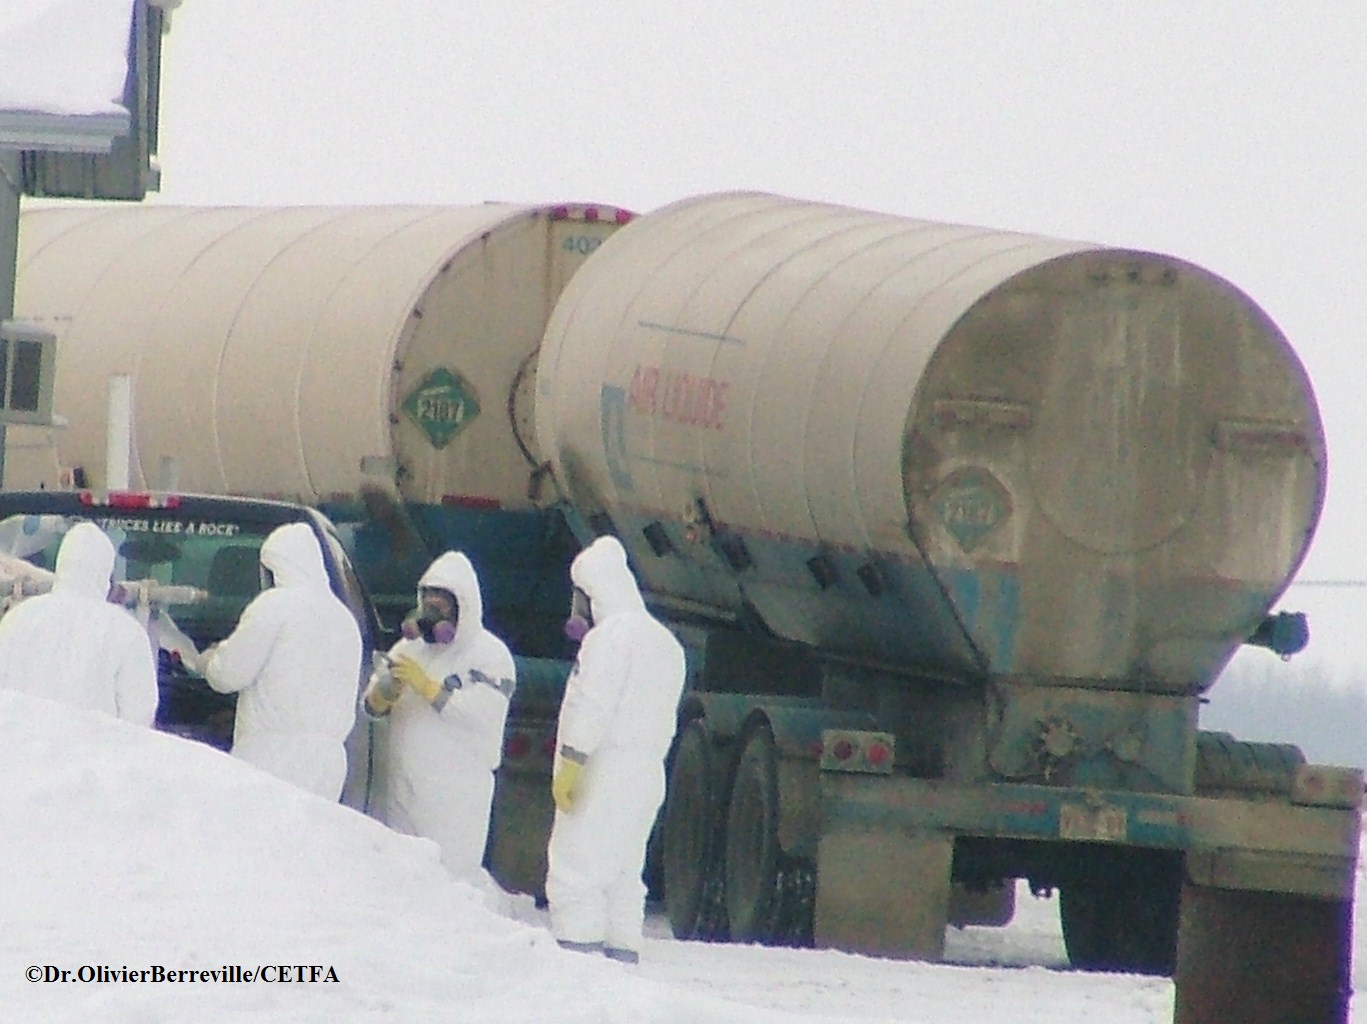 CFIA officials prepare to gas turkeys during 2010 avian influenza outbreak in Rockwood, Manitoba.                                                                                                              Photo: Dr. Olivier Berreville / CETFA.